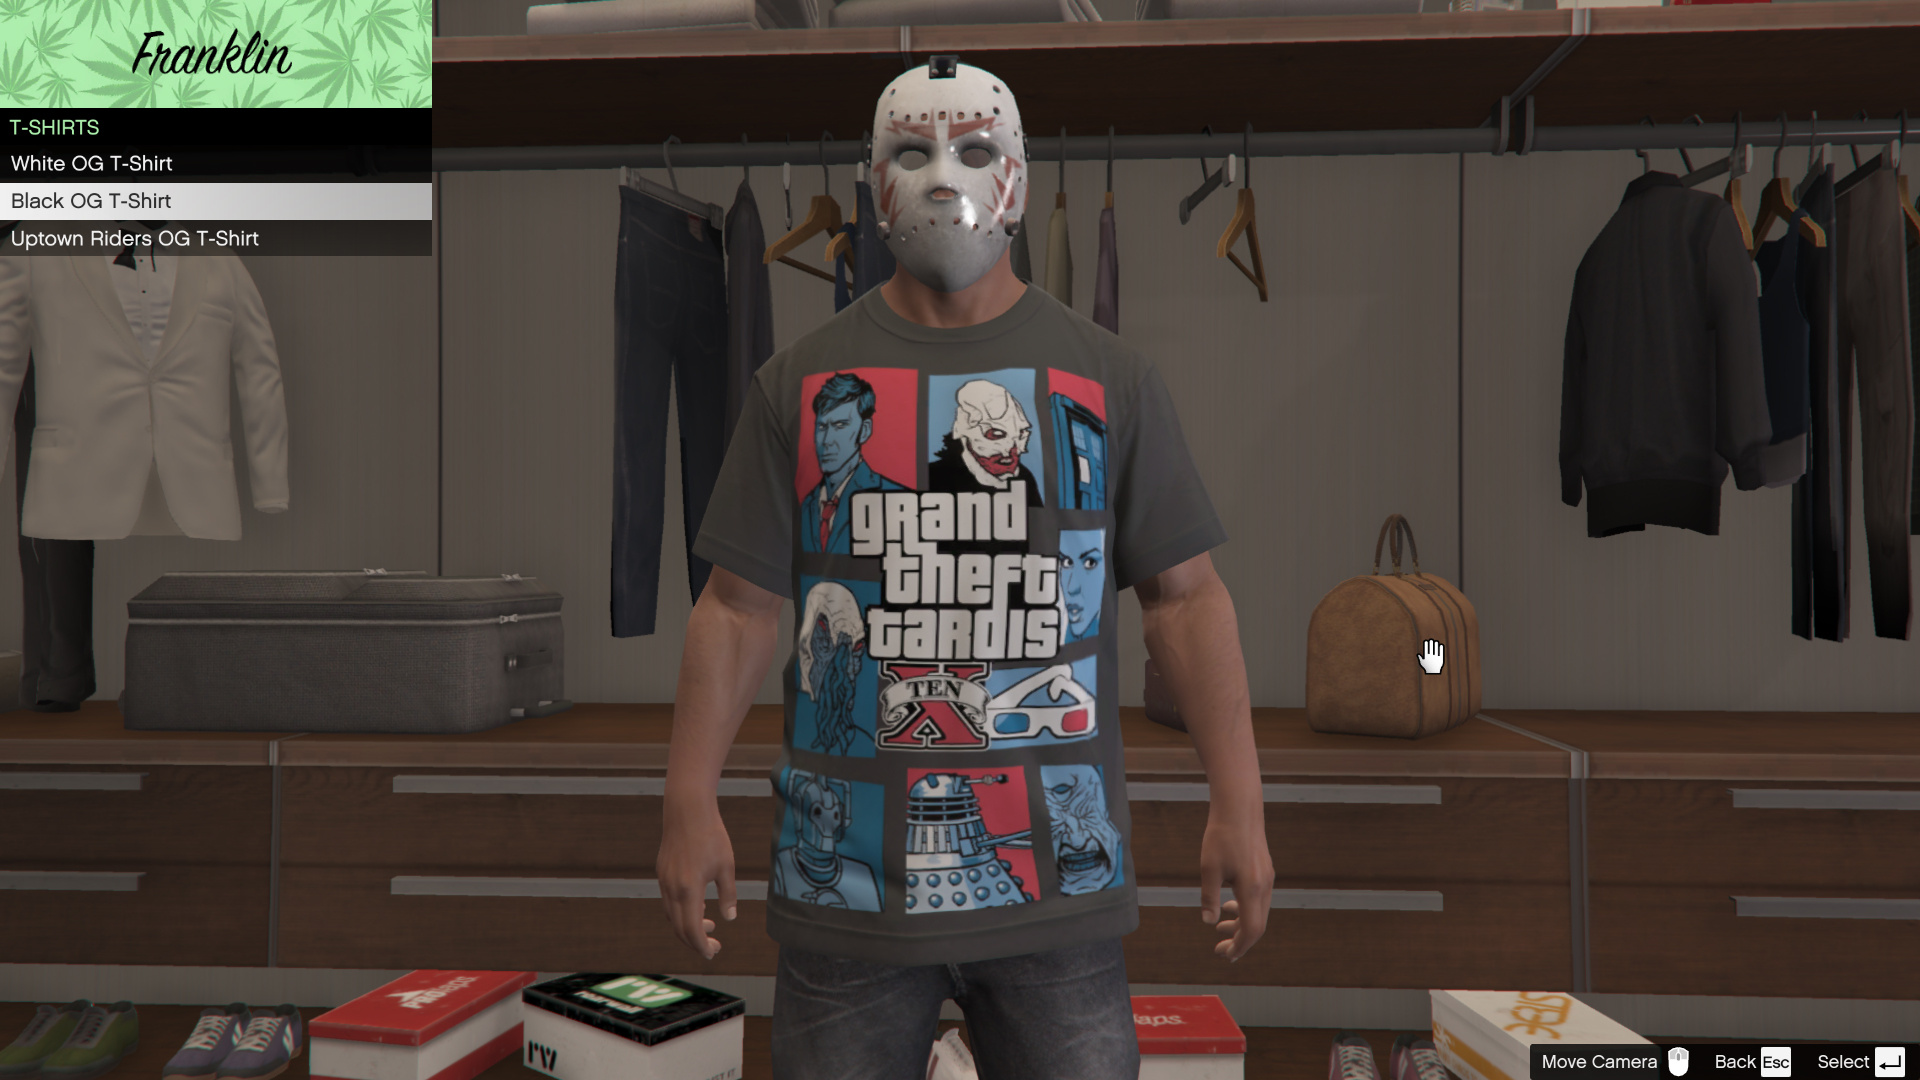 Black t shirt michaels - 7c2831 Gta5 2015 05 28 00 35 10 472